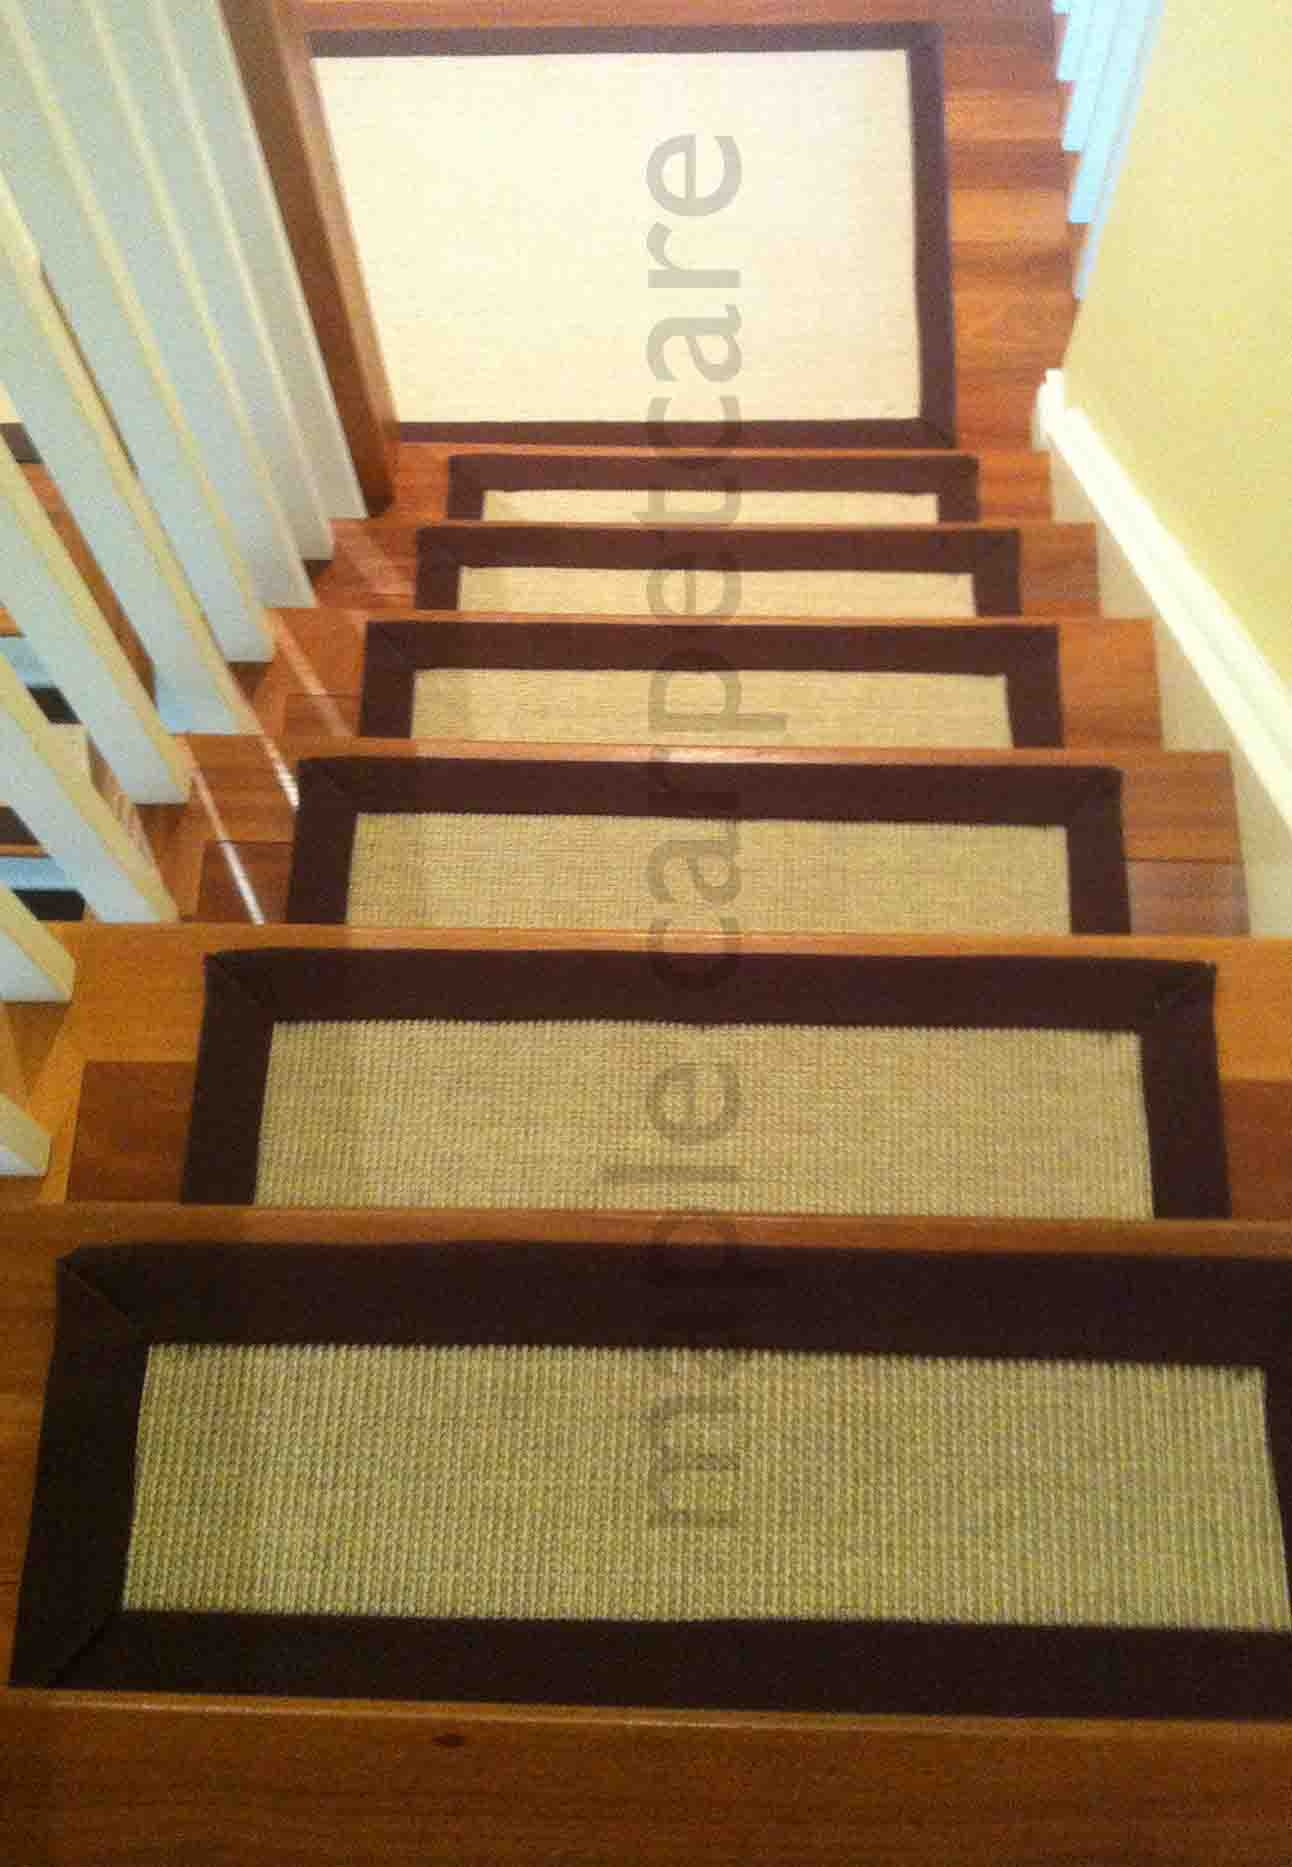 Stair Rugs Rugs For Runners On Stairs Sisal Carpet Laid As Runner Throughout Diy Stair Tread Rugs (View 5 of 15)